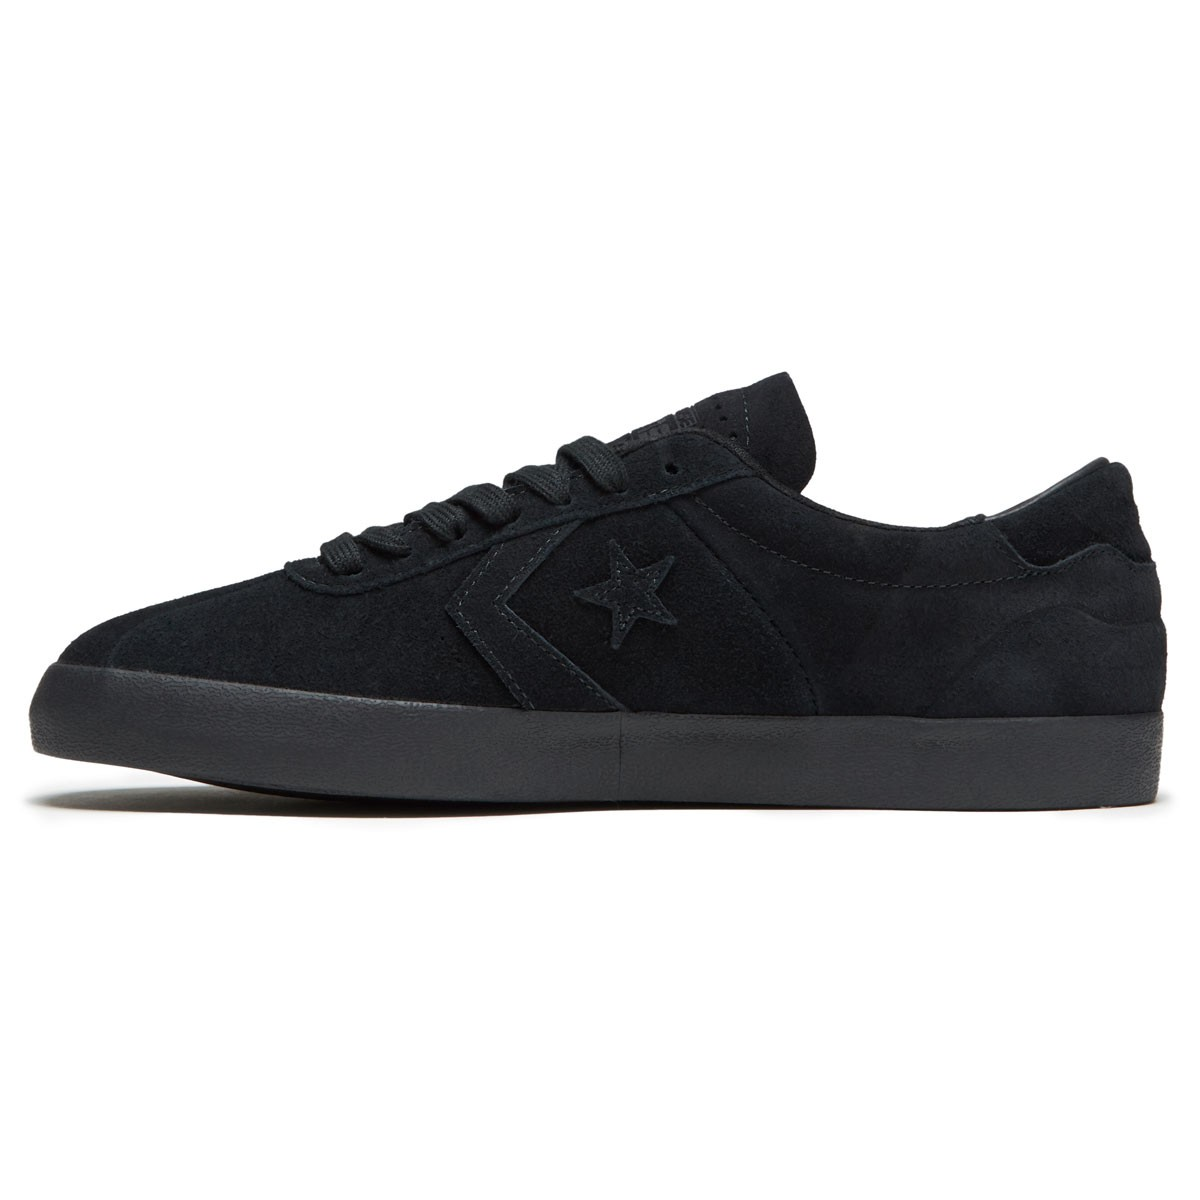 Converse Breakpoint Pro Ox Mono Suede Shoes